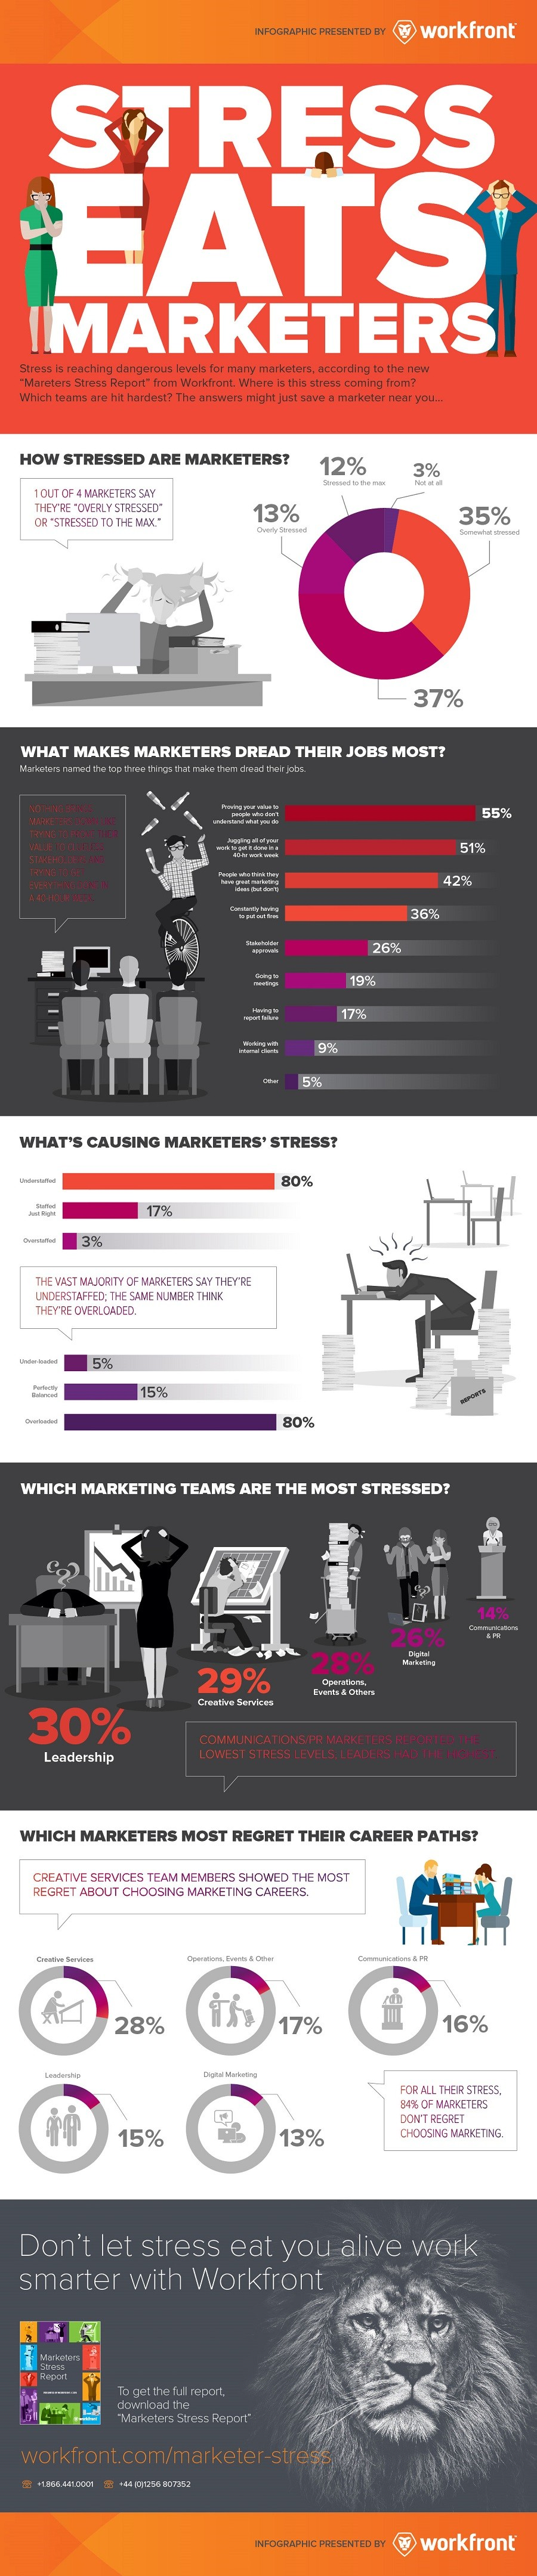 Marketers Stress Report